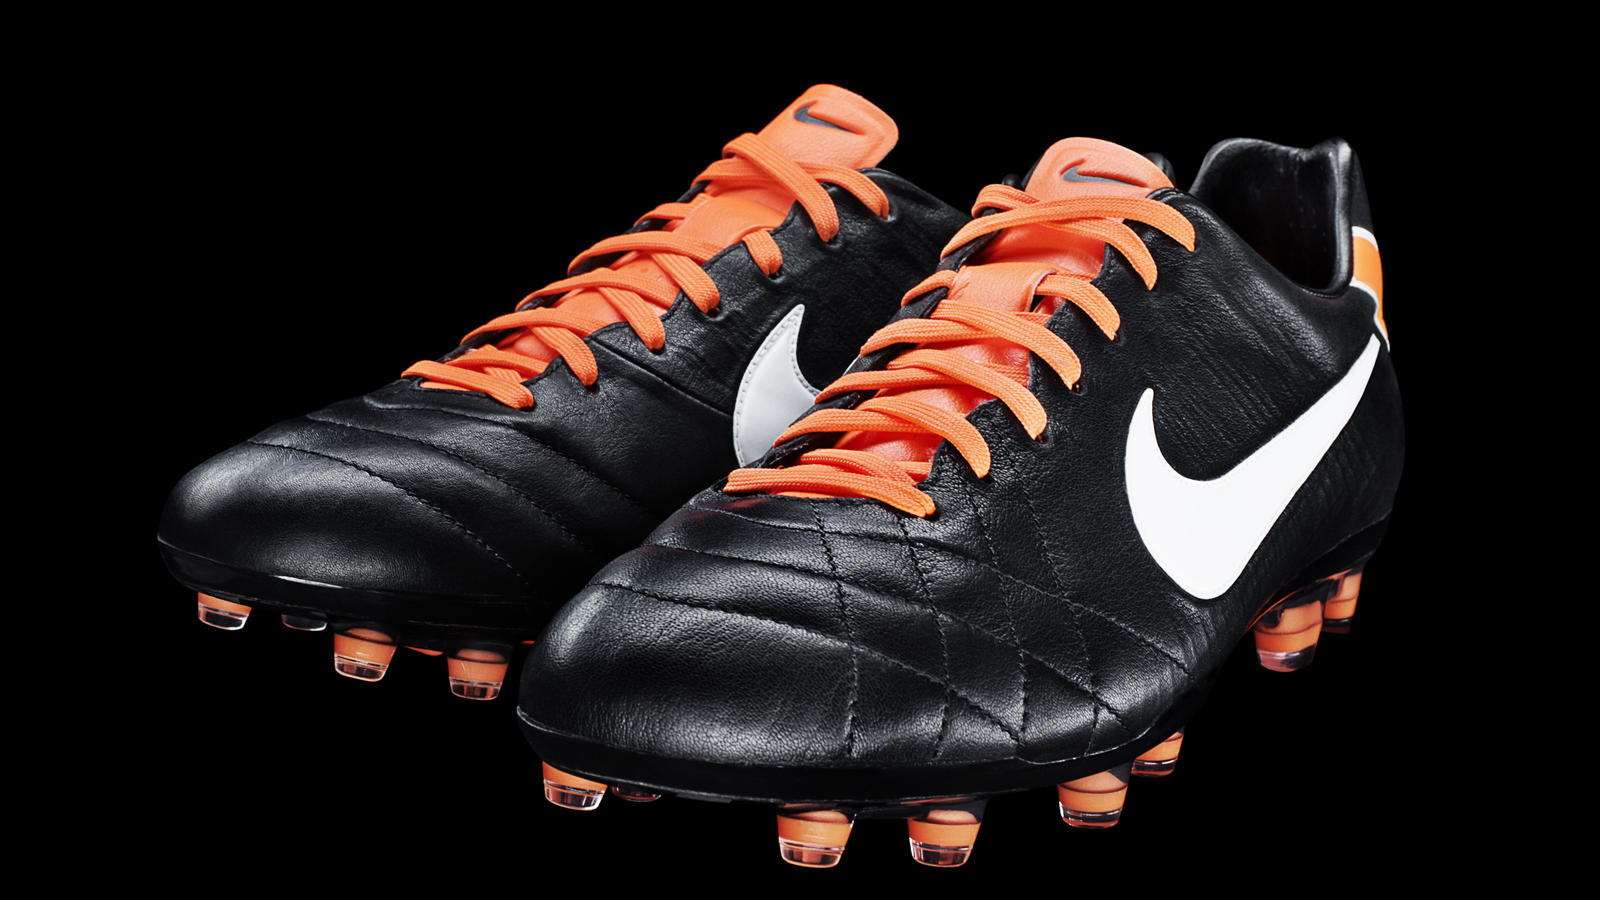 92b7b5d56 The Tiempo Legend IV Elite is part of Nike Football's DNA and with that  comes a responsibility to its tradition and heritage, but also a commitment  to ...